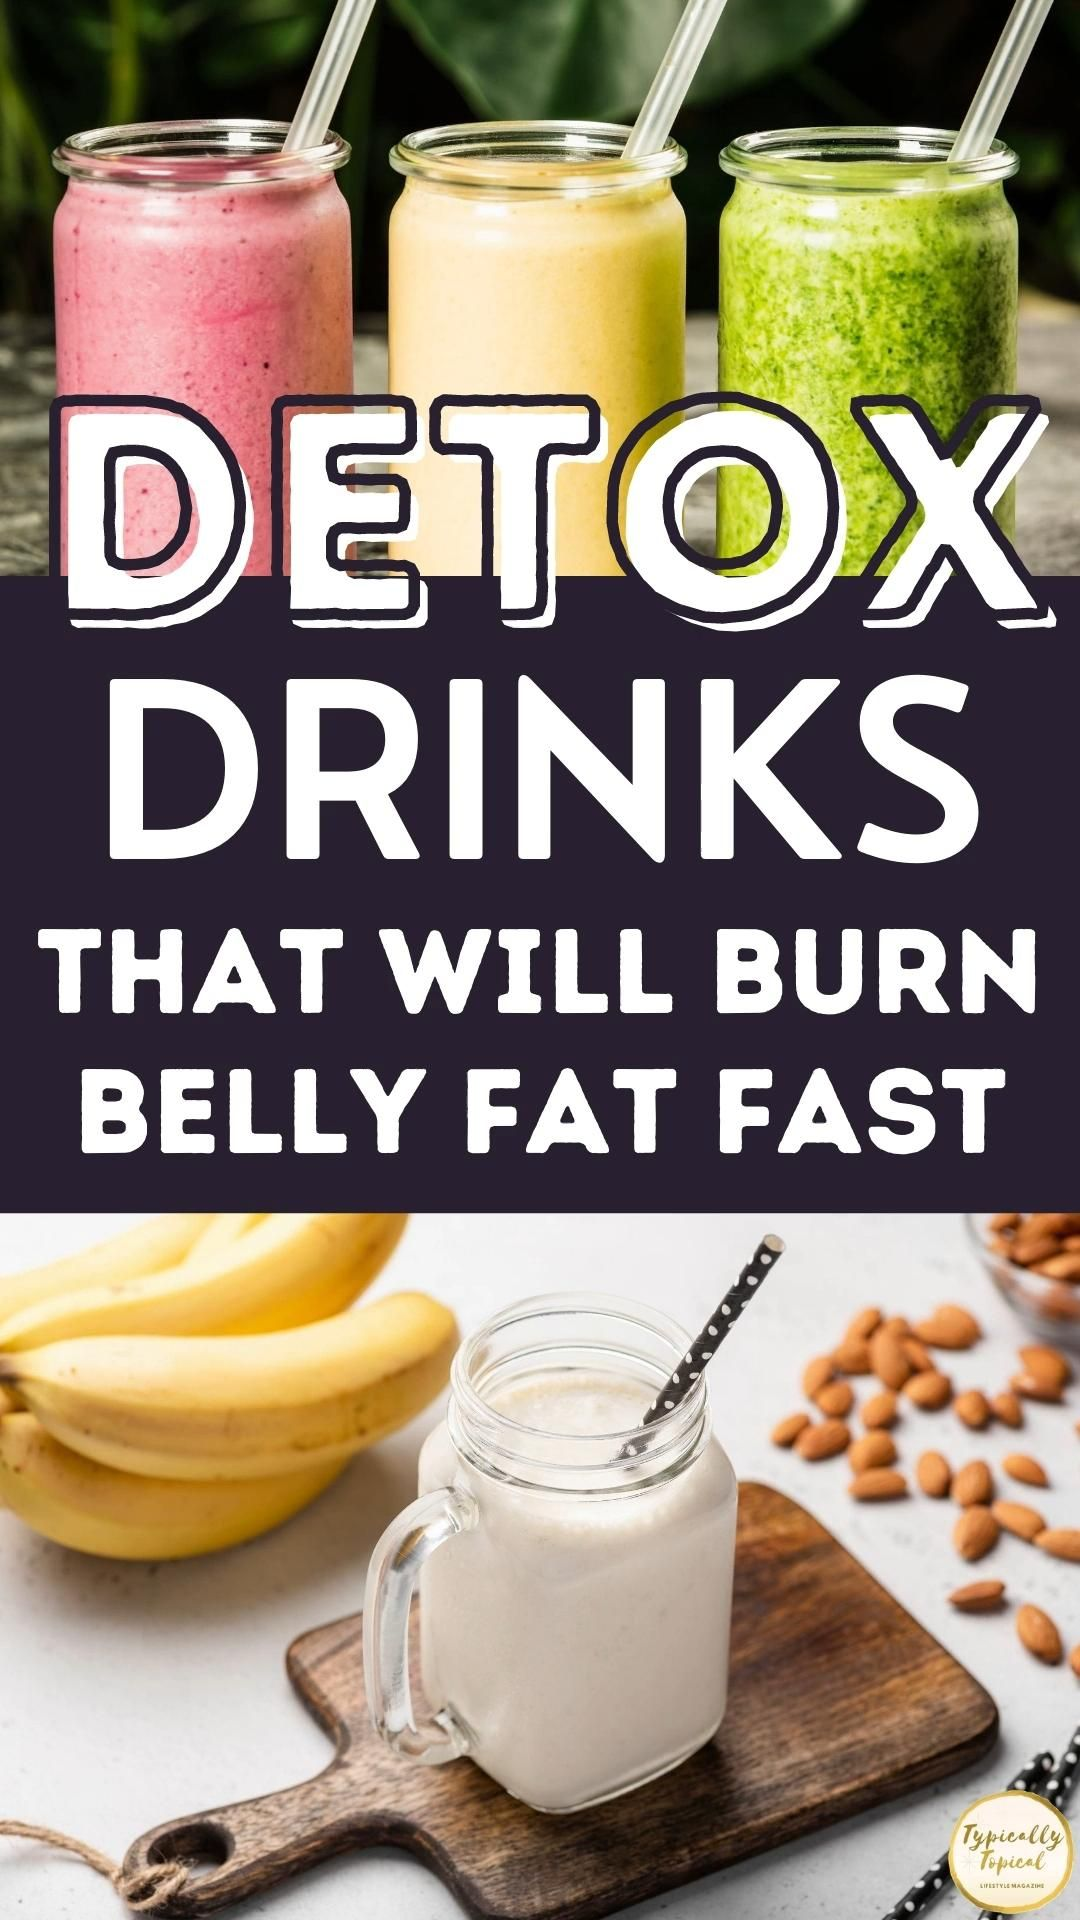 12 Delicious Fat Burning Detox Drinks to Lose Weight, Burn Belly Fat & Get a Flat Stomach